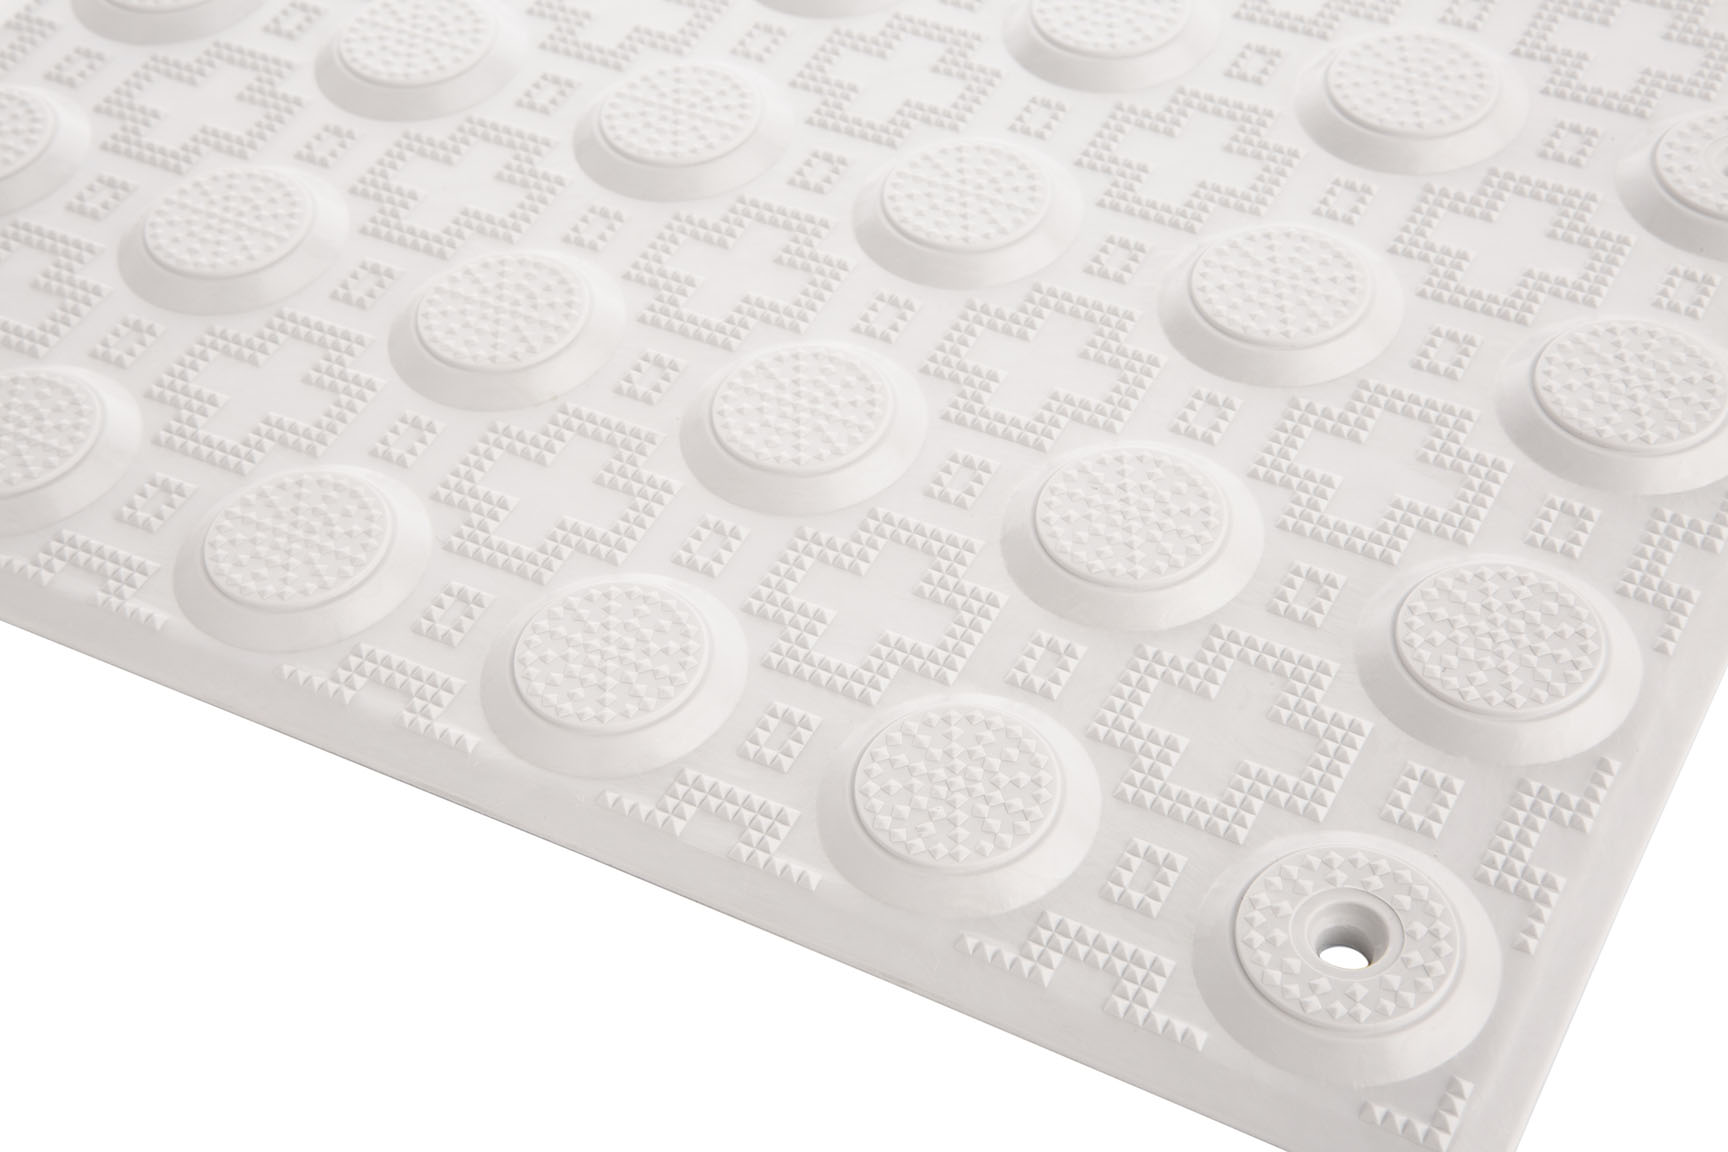 PTISA600 - White Fibreglass Reinforced Polymer Tactiles - Perth Tactiles